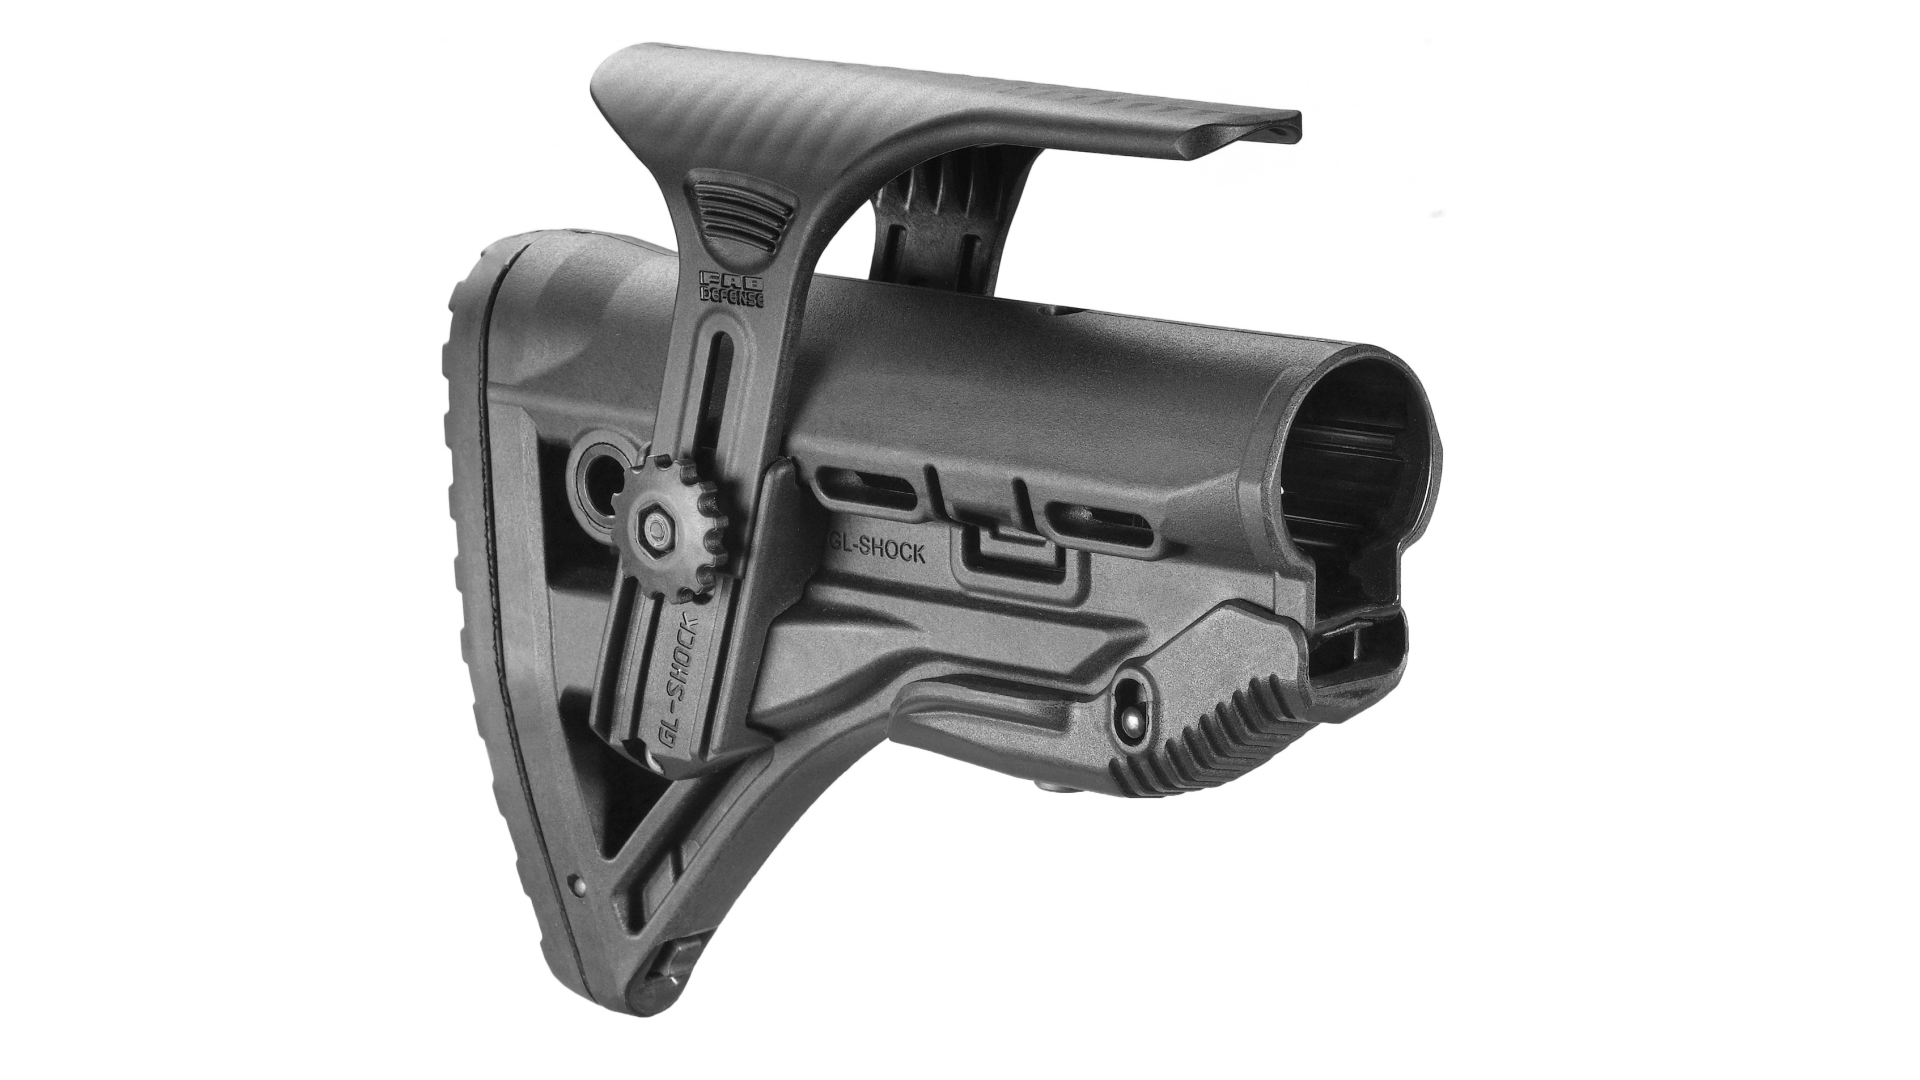 Collapsible Butt Stock for M16/AR15 w/ Adjustable Cheek Piece